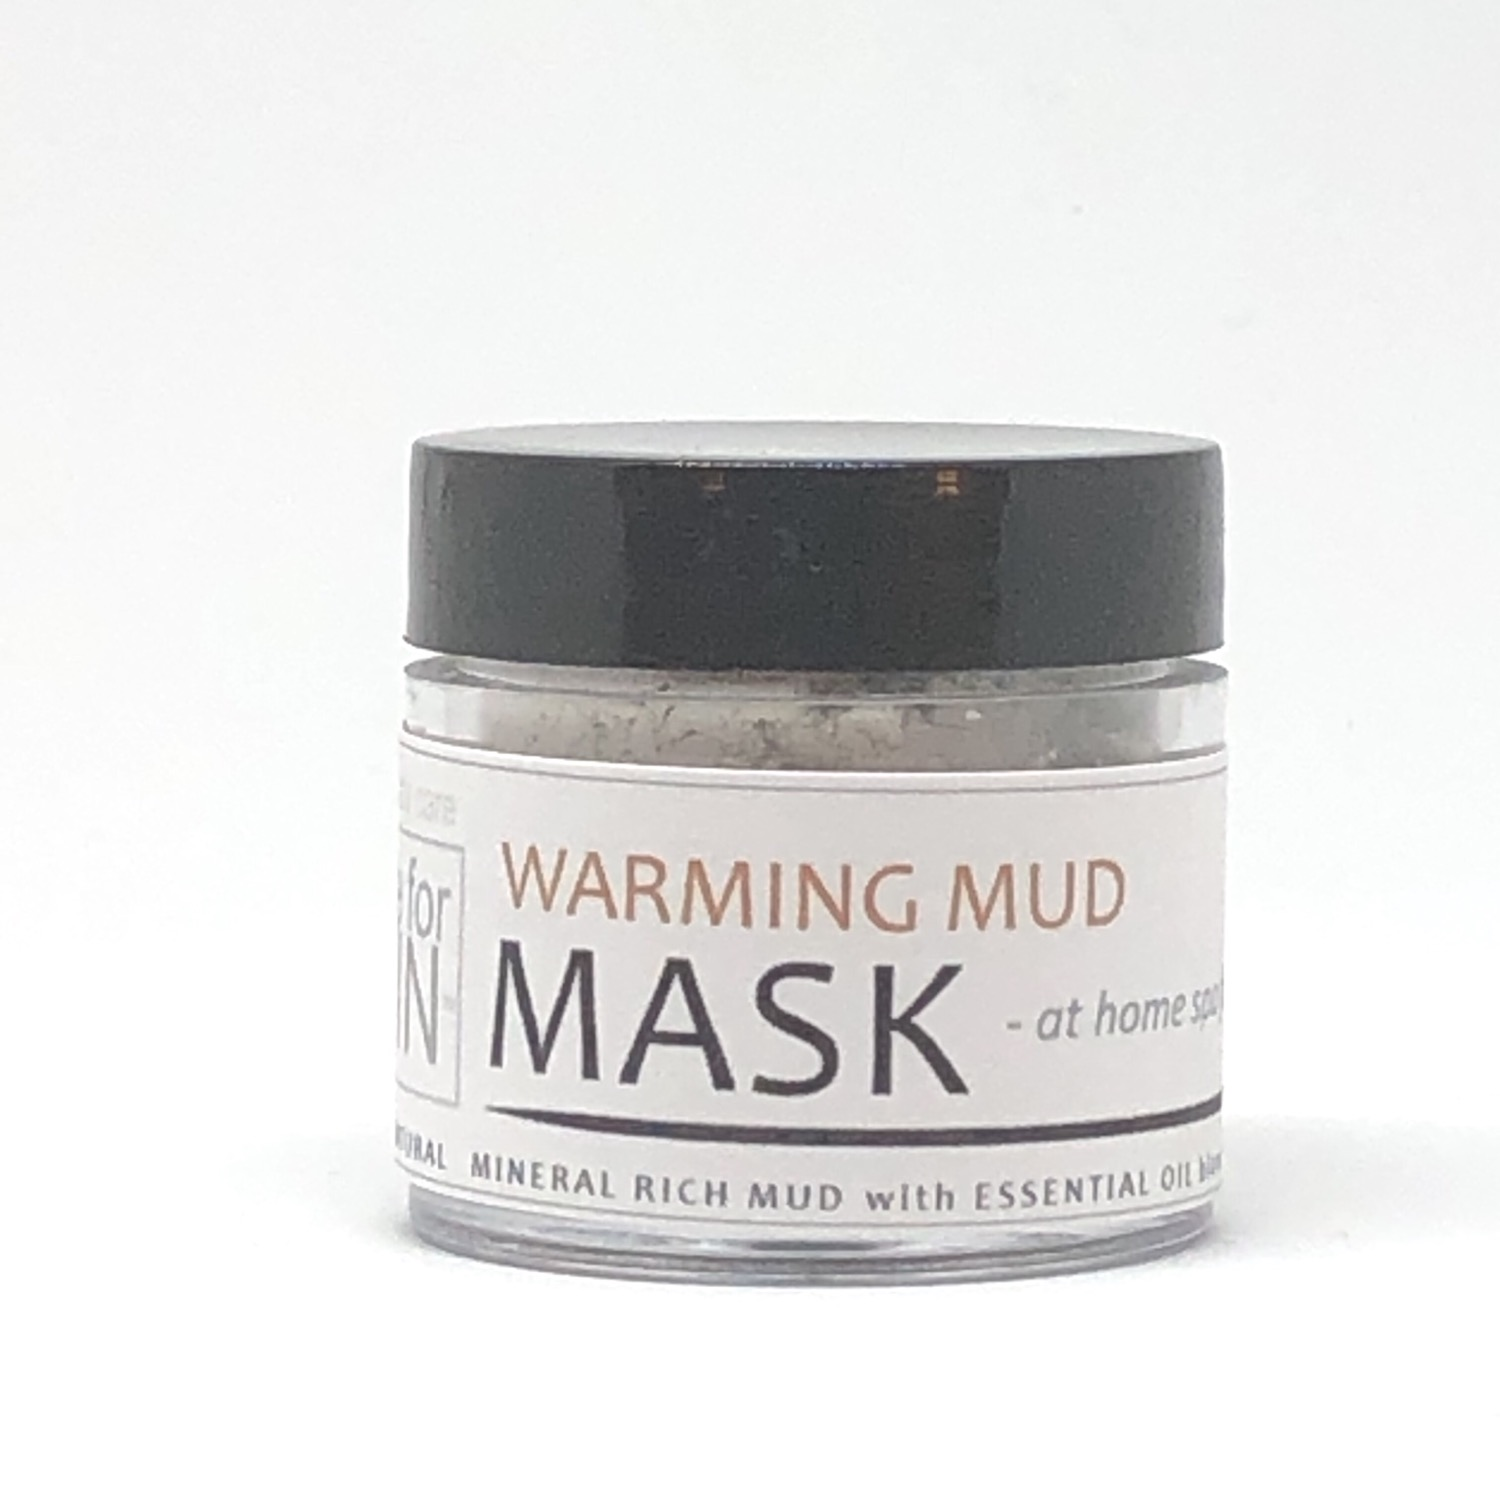 Warming Mud Mask | made for SKIN